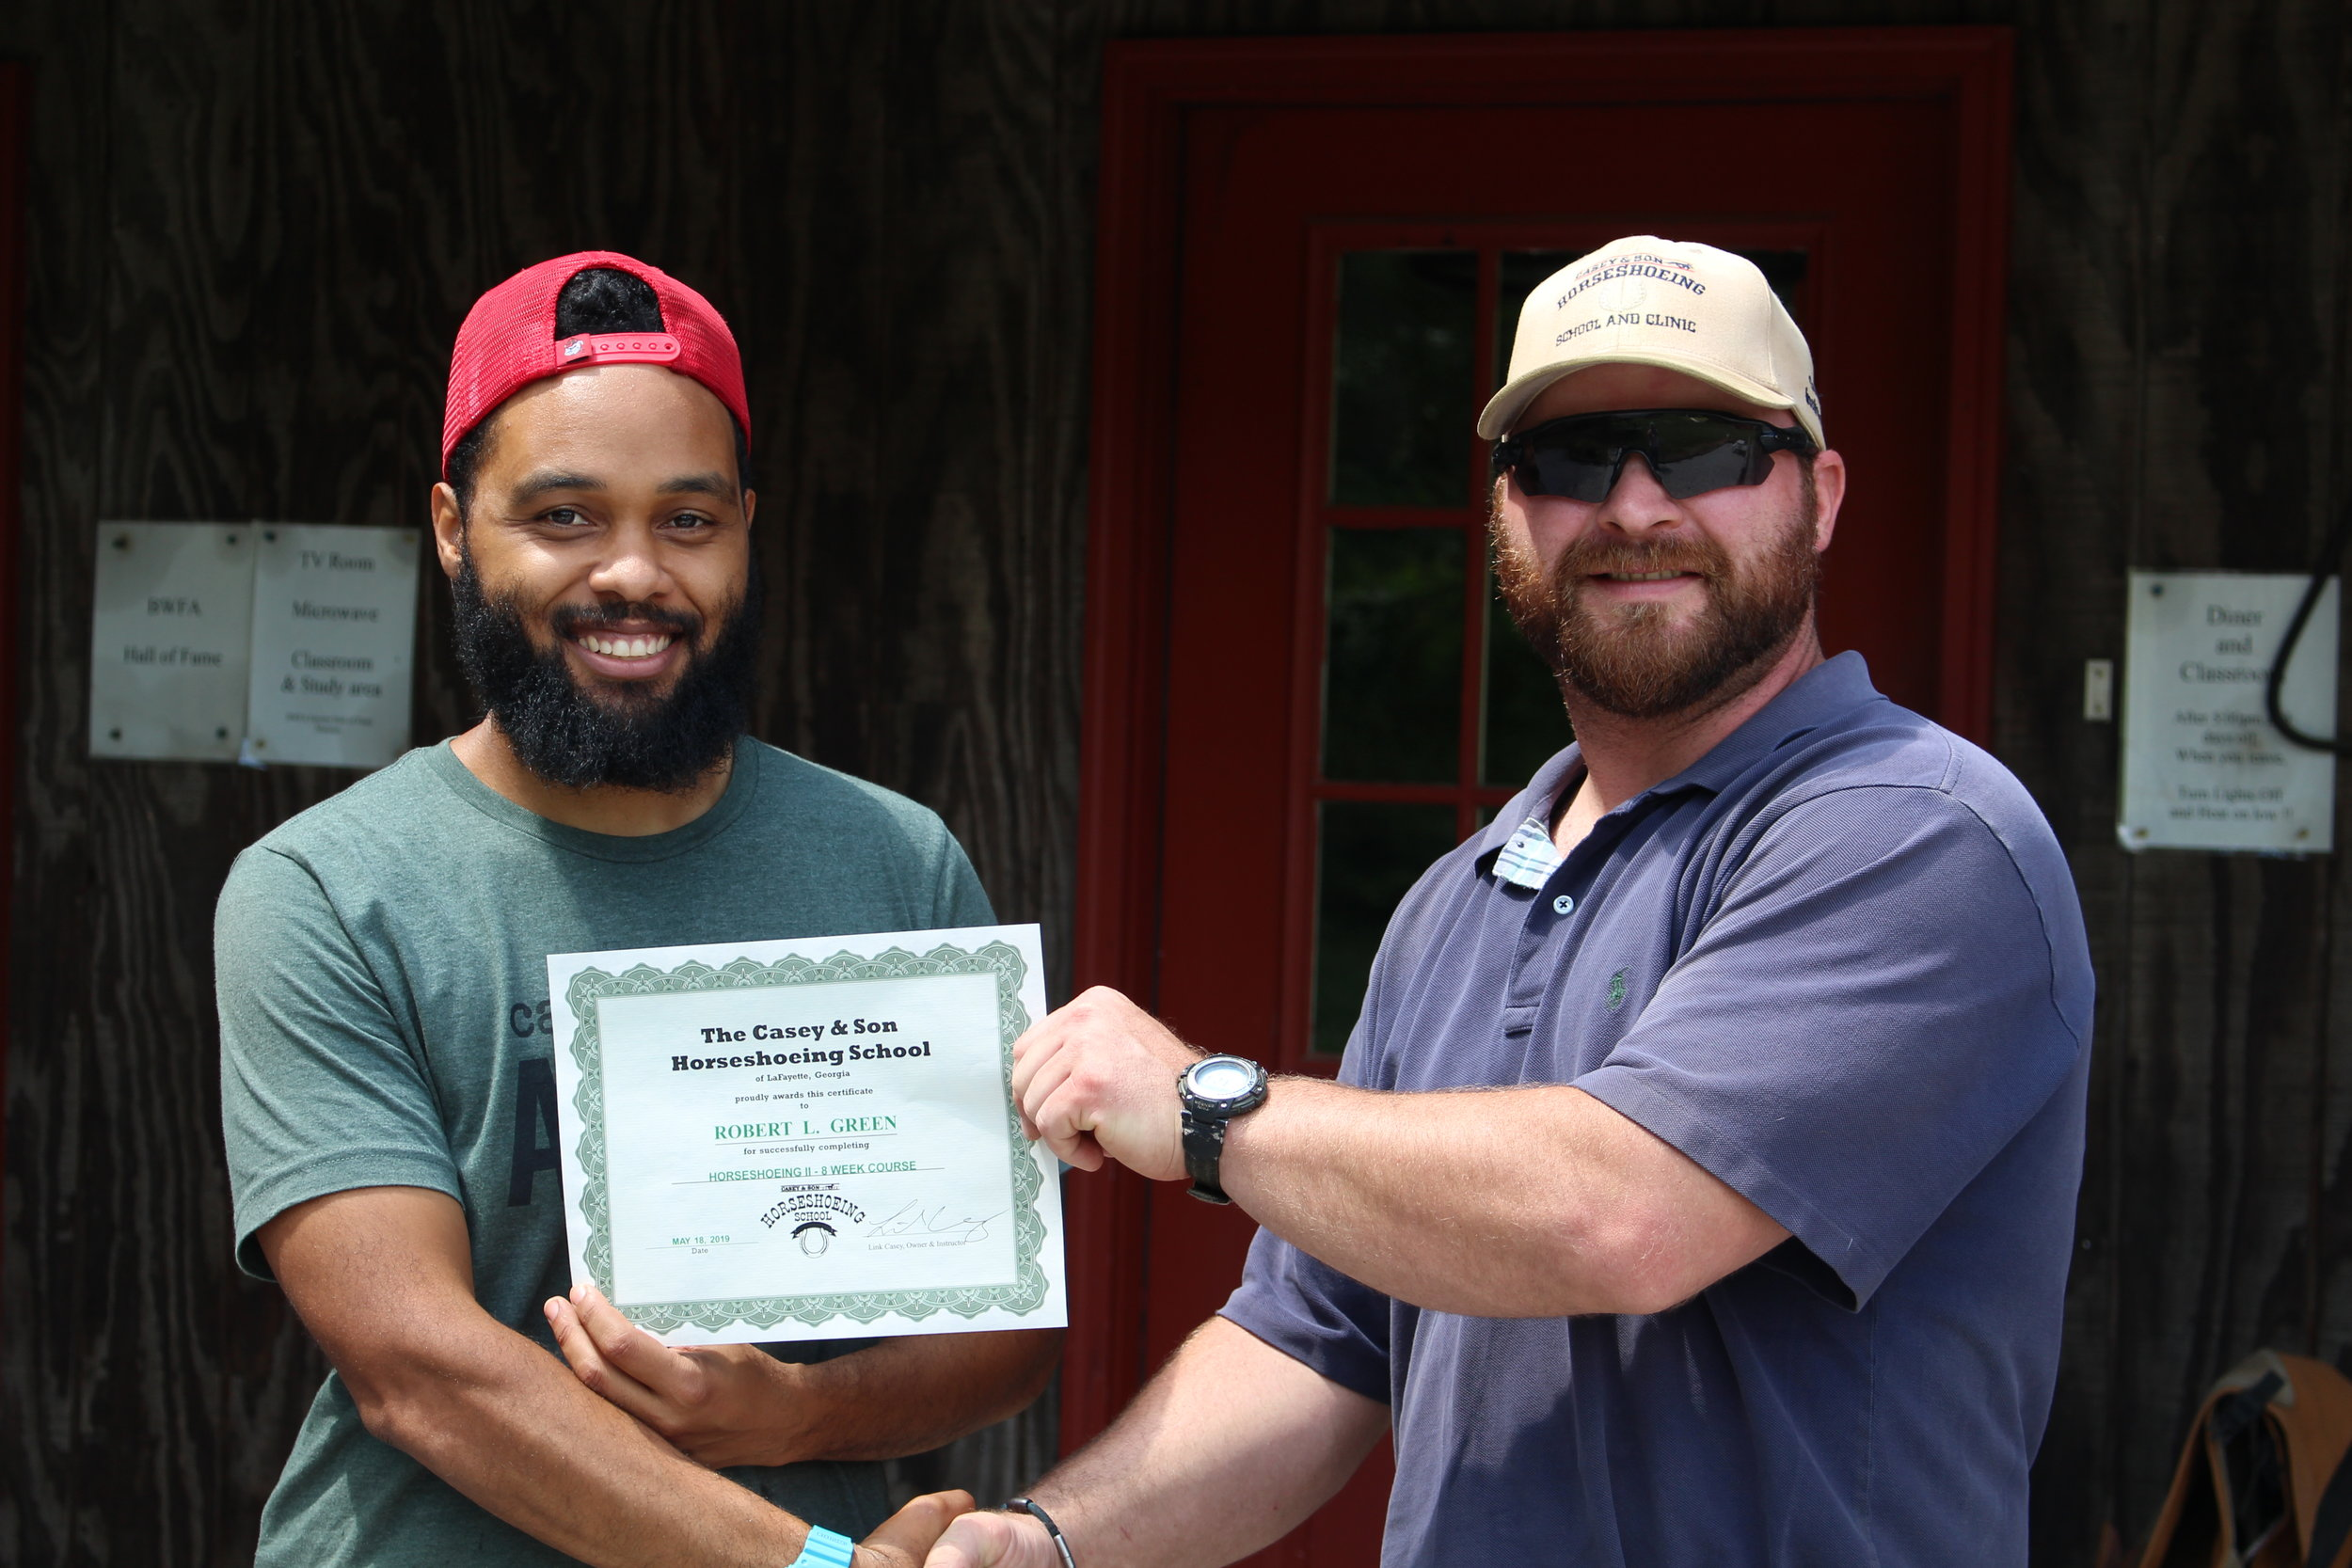 Robert L. Green Casey & Son Horseshoeing Graduate and Veteran of Florida with owner and Instructor, Link Casey. 5.28.2019